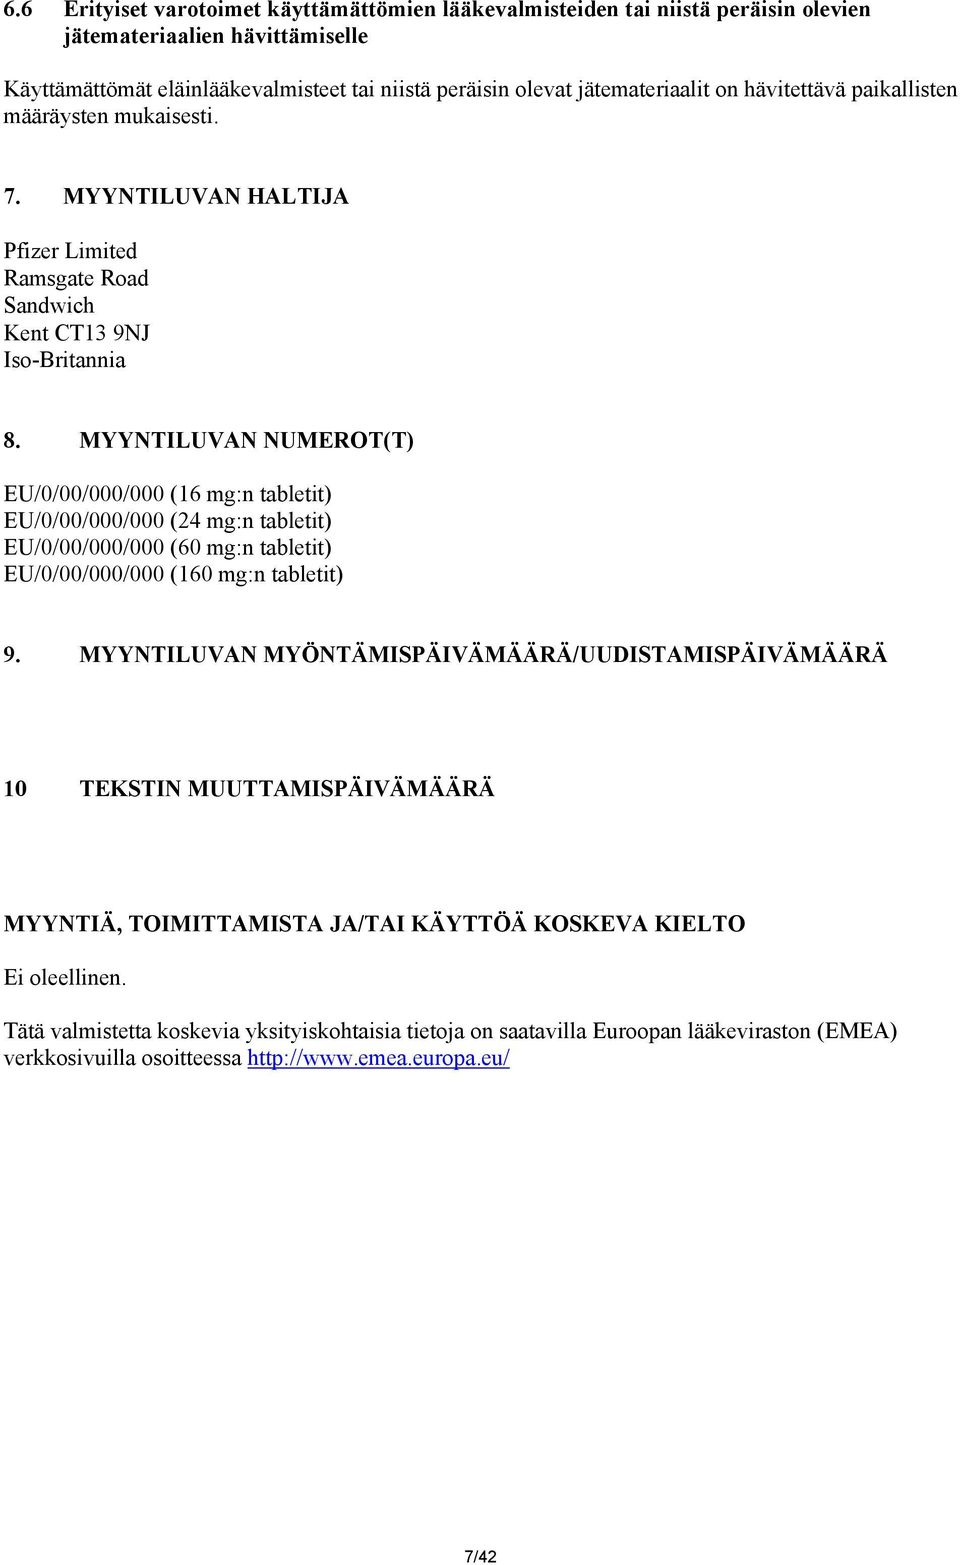 MYYNTILUVAN NUMEROT(T) EU/0/00/000/000 (16 mg:n tabletit) EU/0/00/000/000 (24 mg:n tabletit) EU/0/00/000/000 (60 mg:n tabletit) EU/0/00/000/000 (160 mg:n tabletit) 9.